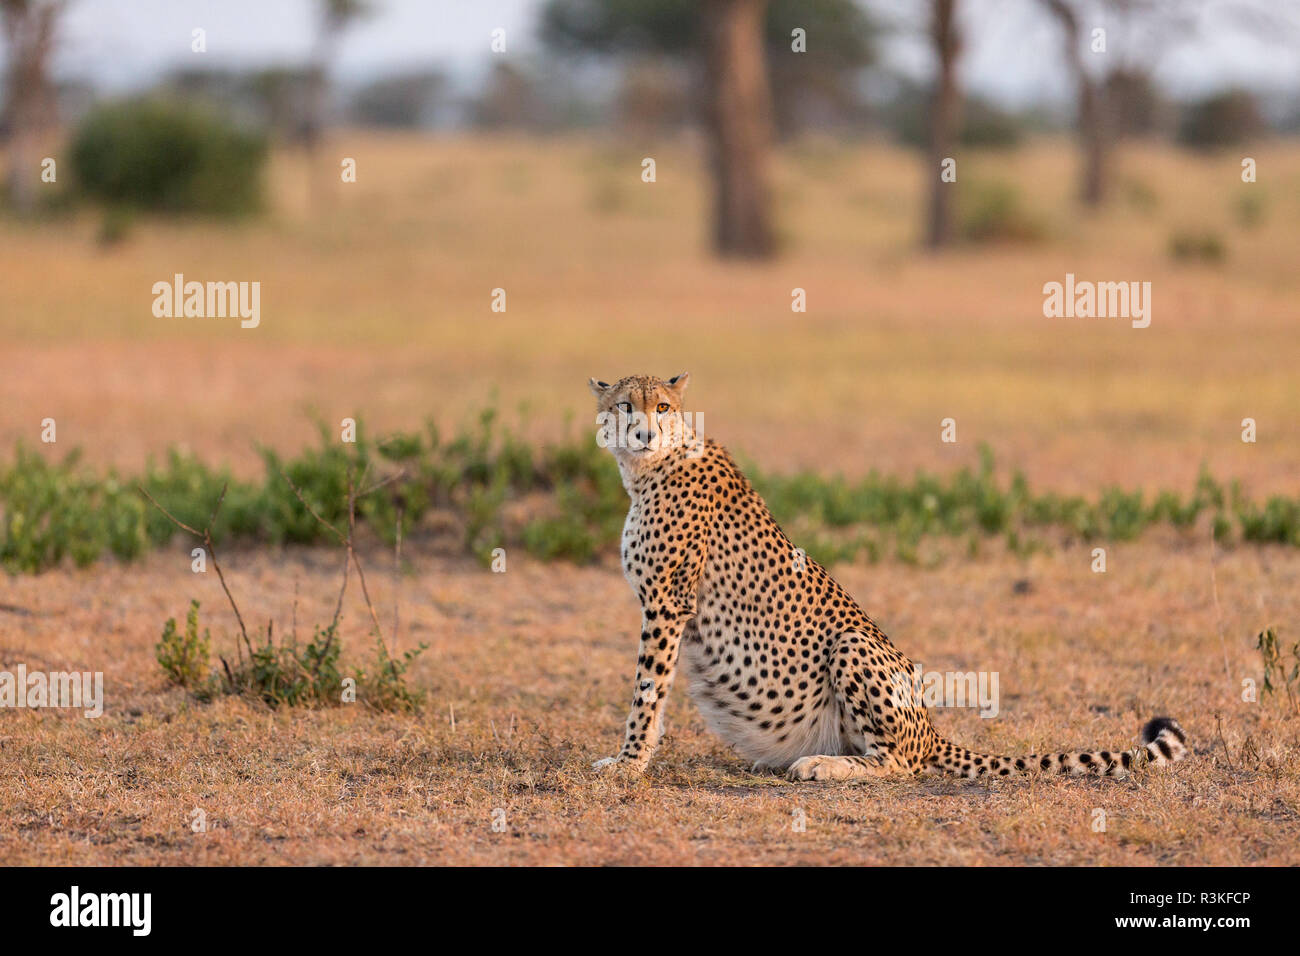 Cheetah (Acinonyx jubatus) resting in early morning sunlight in the Serengeti National Park, Tanzania - Stock Image